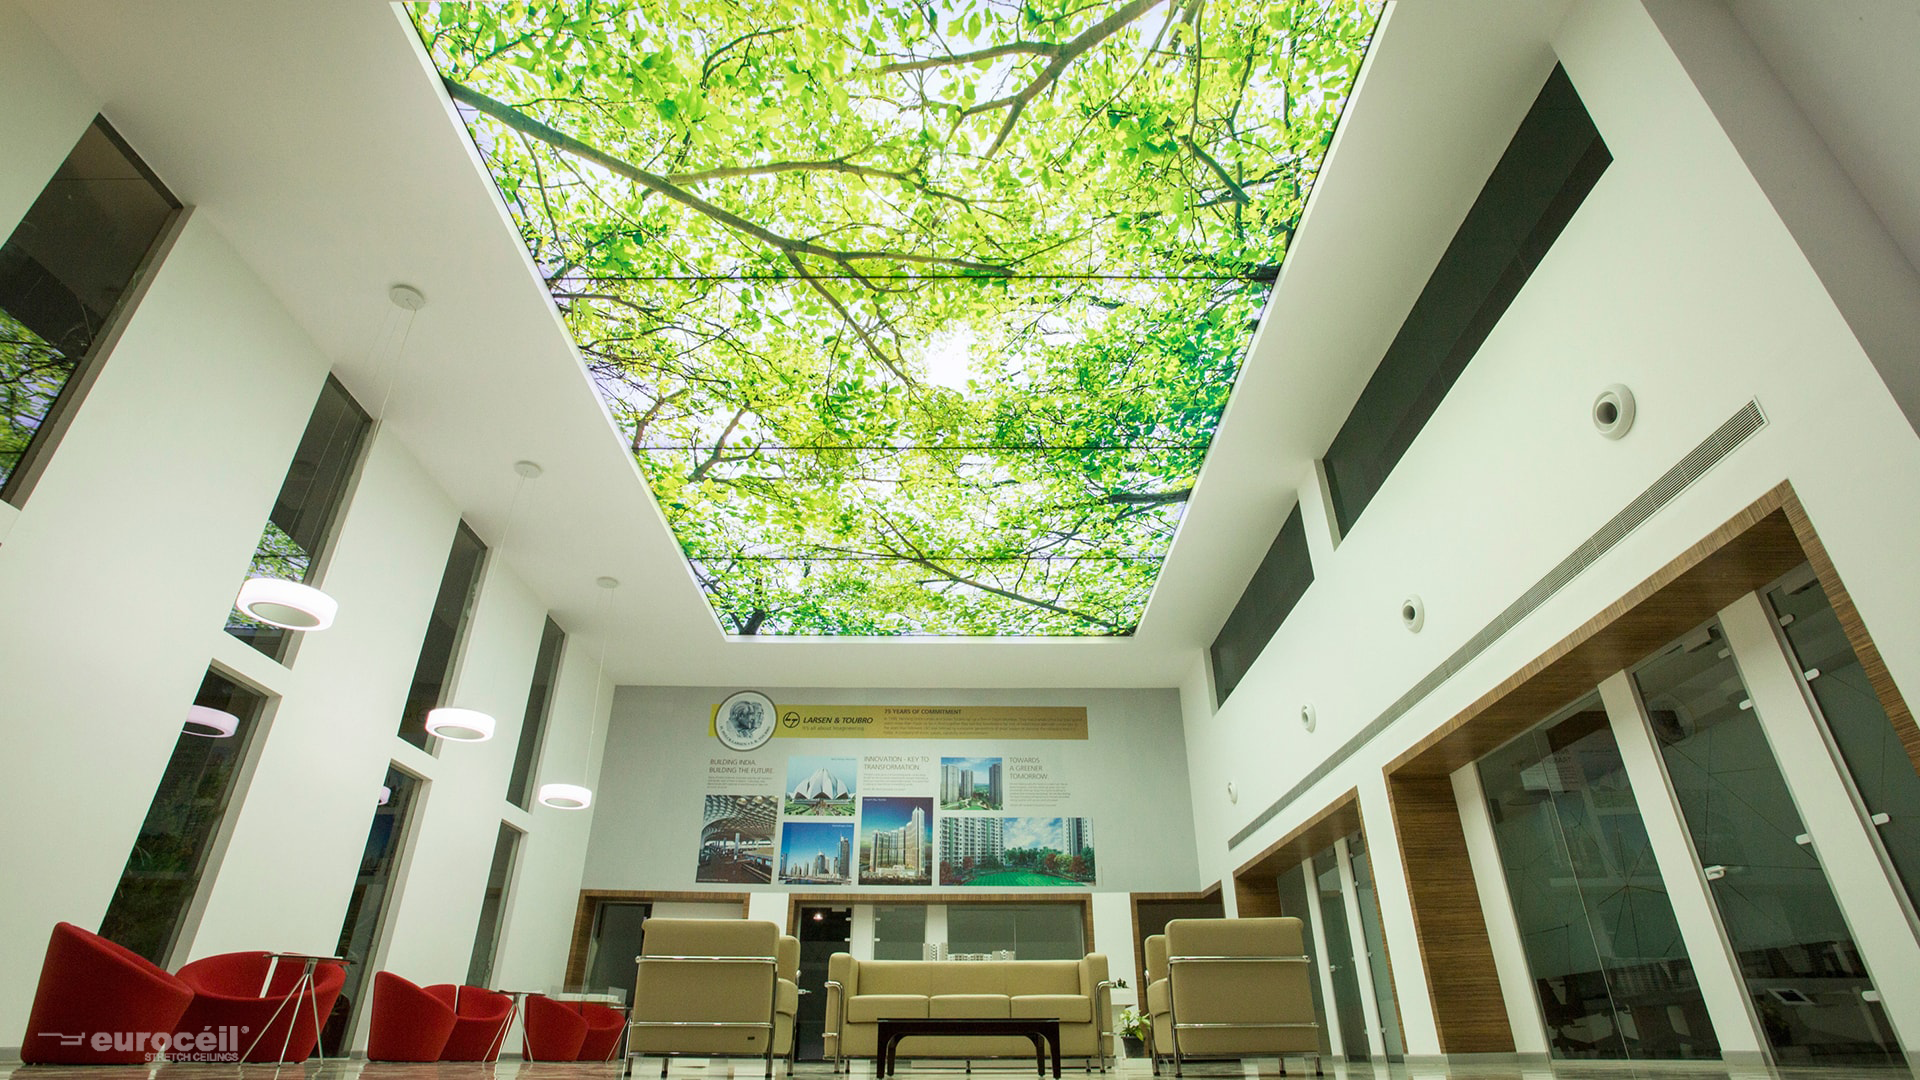 L&T - Stretch Ceiling Printed Translucent with Backlighting in Corporate - Corporate - Bangalore